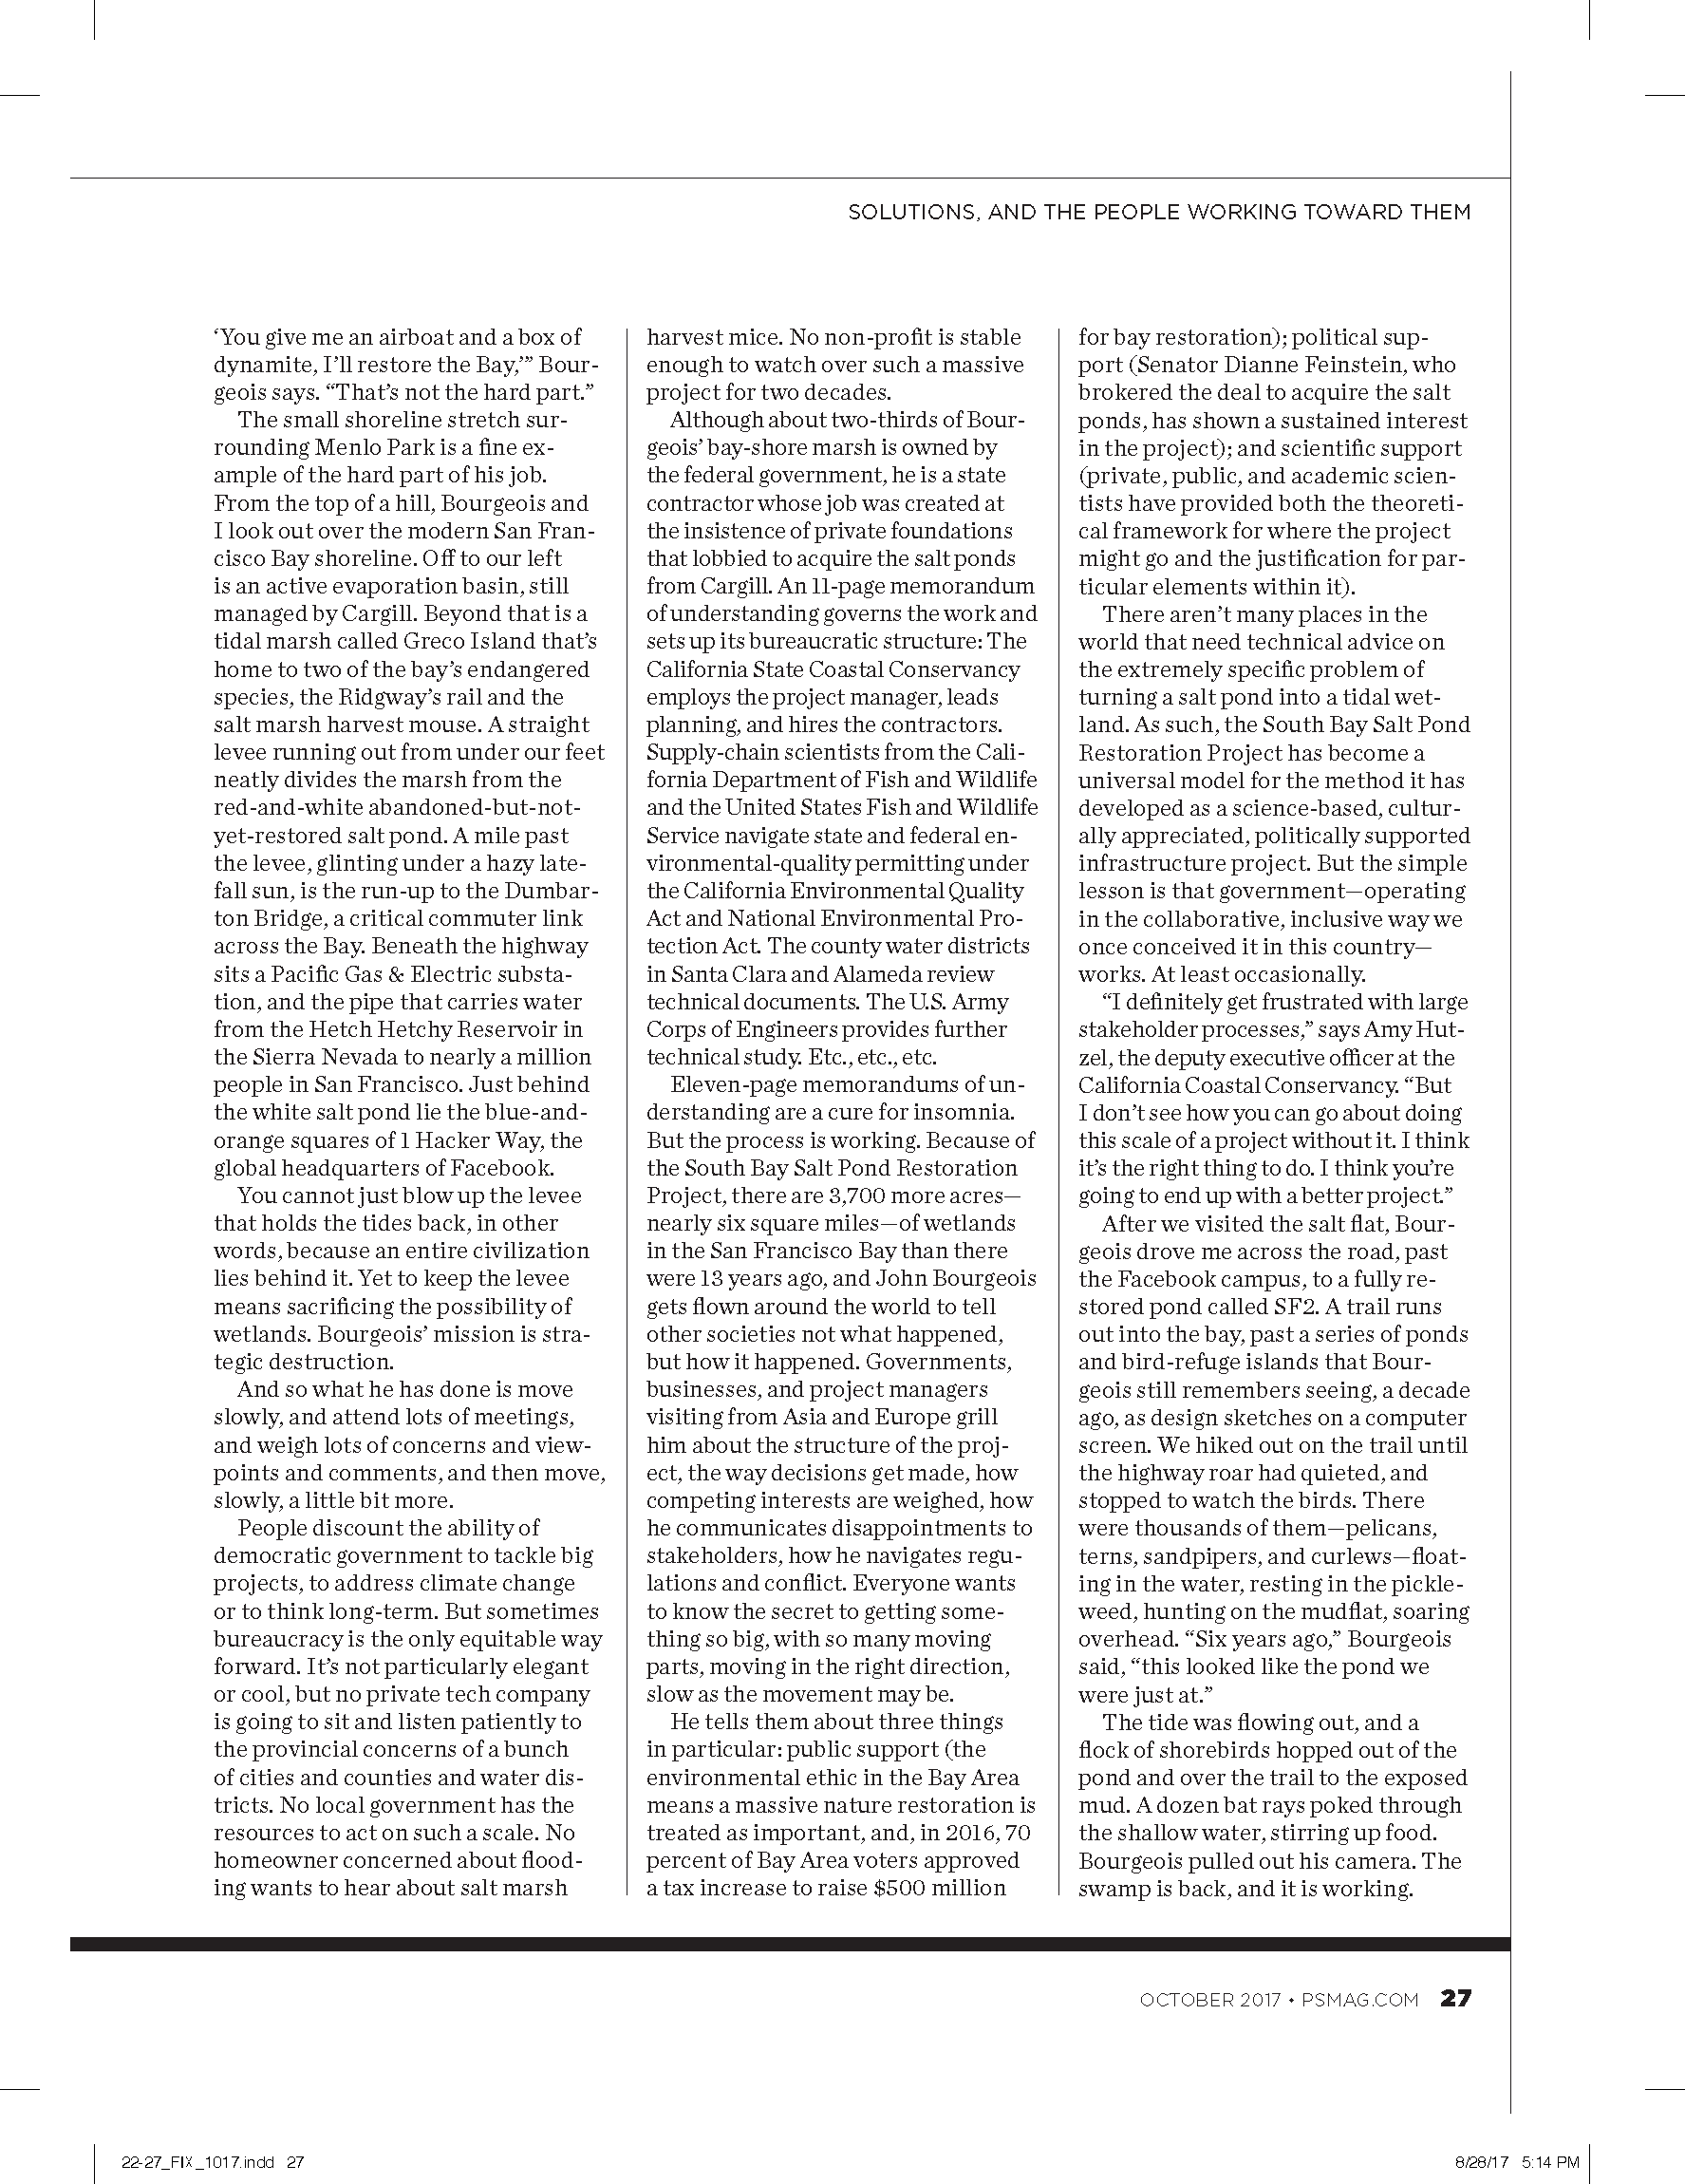 October 2017_Page_29.png